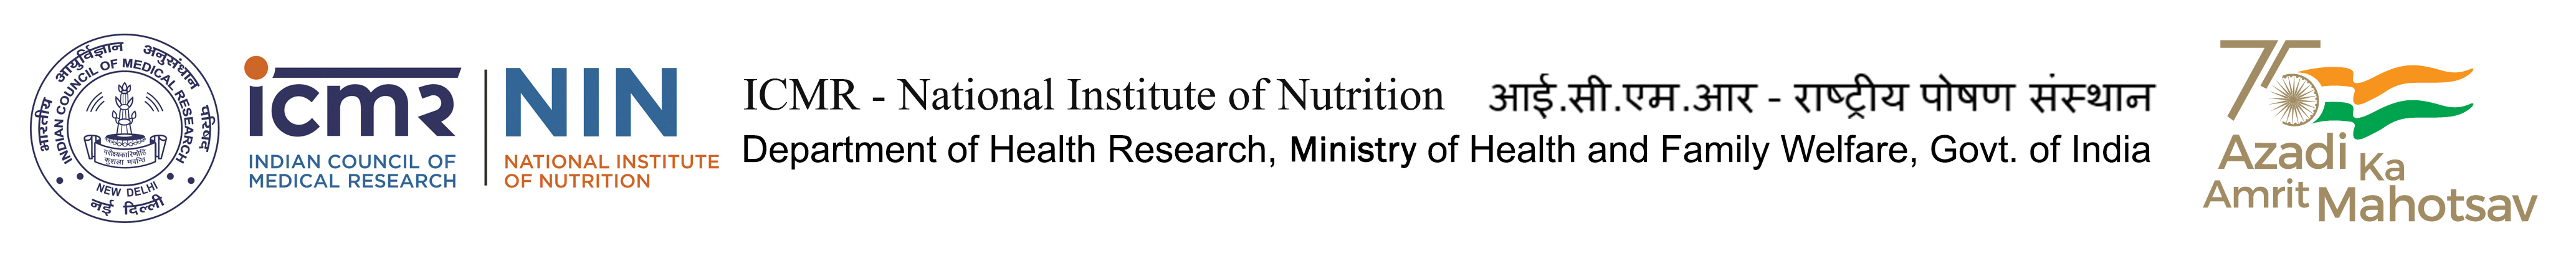 ICMR-National Institute of Nutrition, India